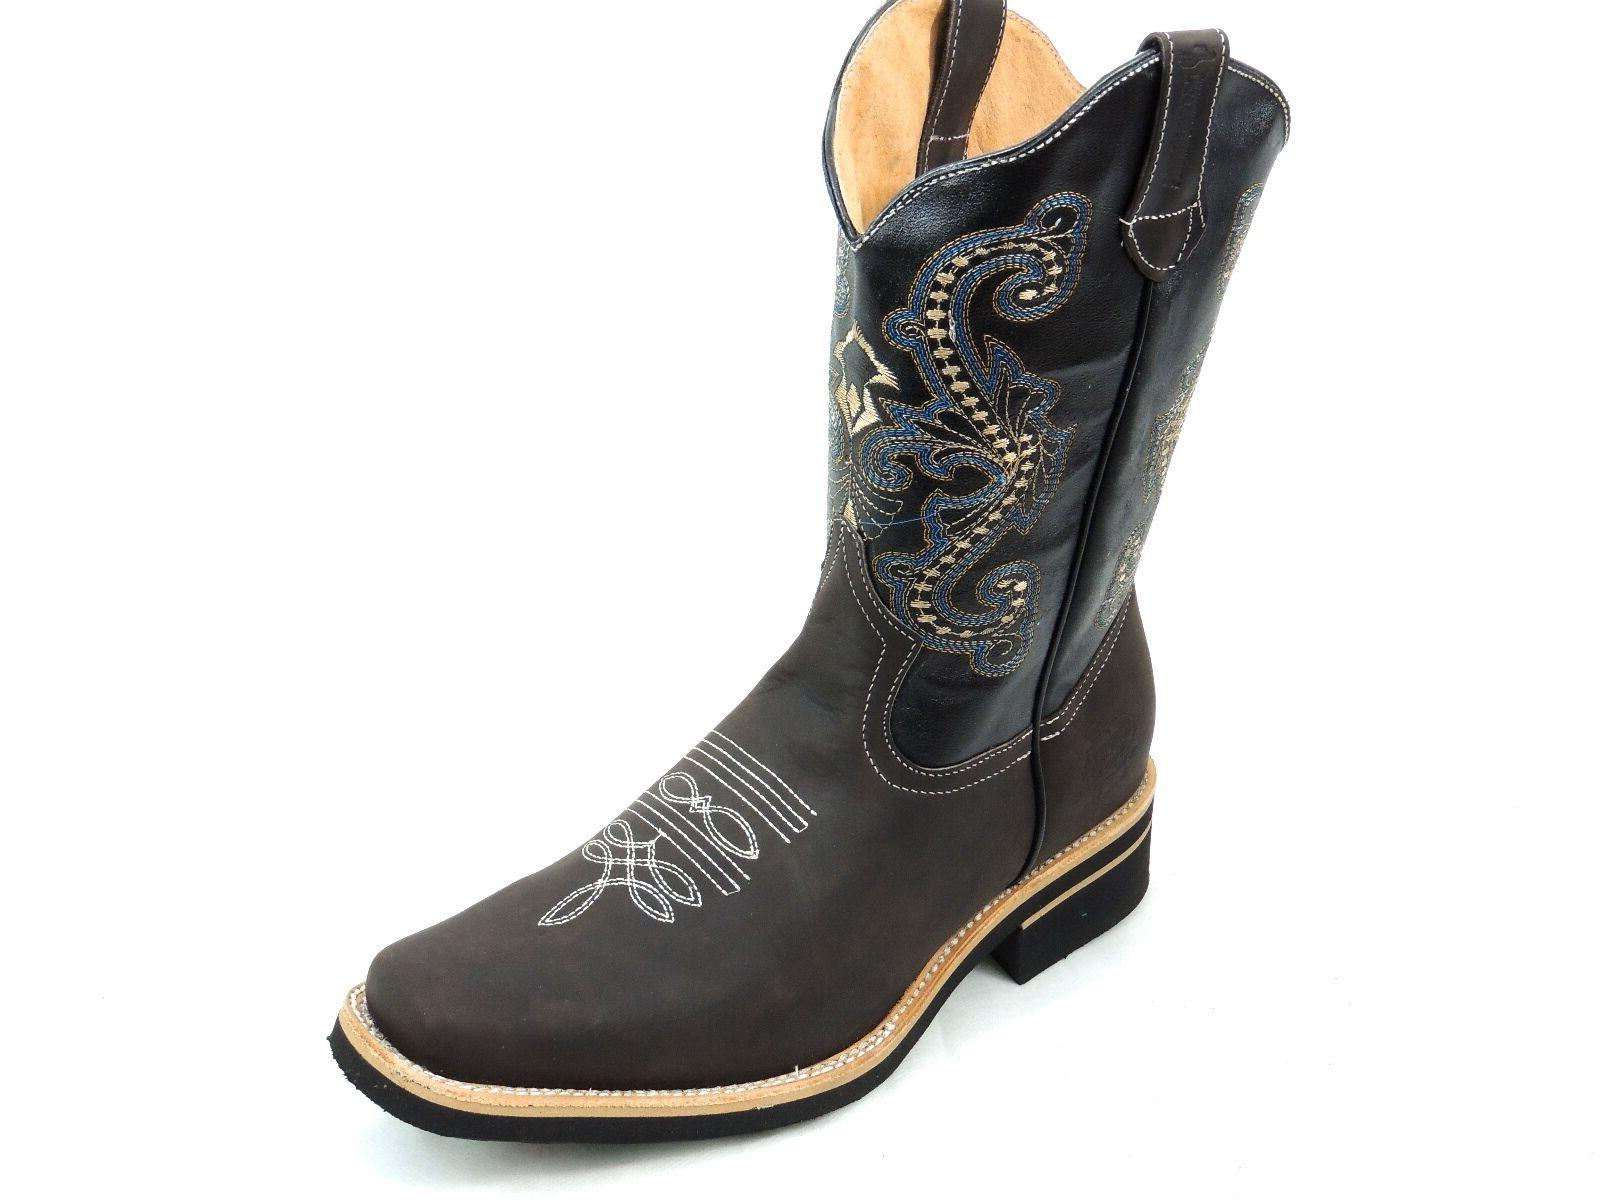 MEN'S RODEO BOOTS GENUINE LEATHER TOE SADDLE